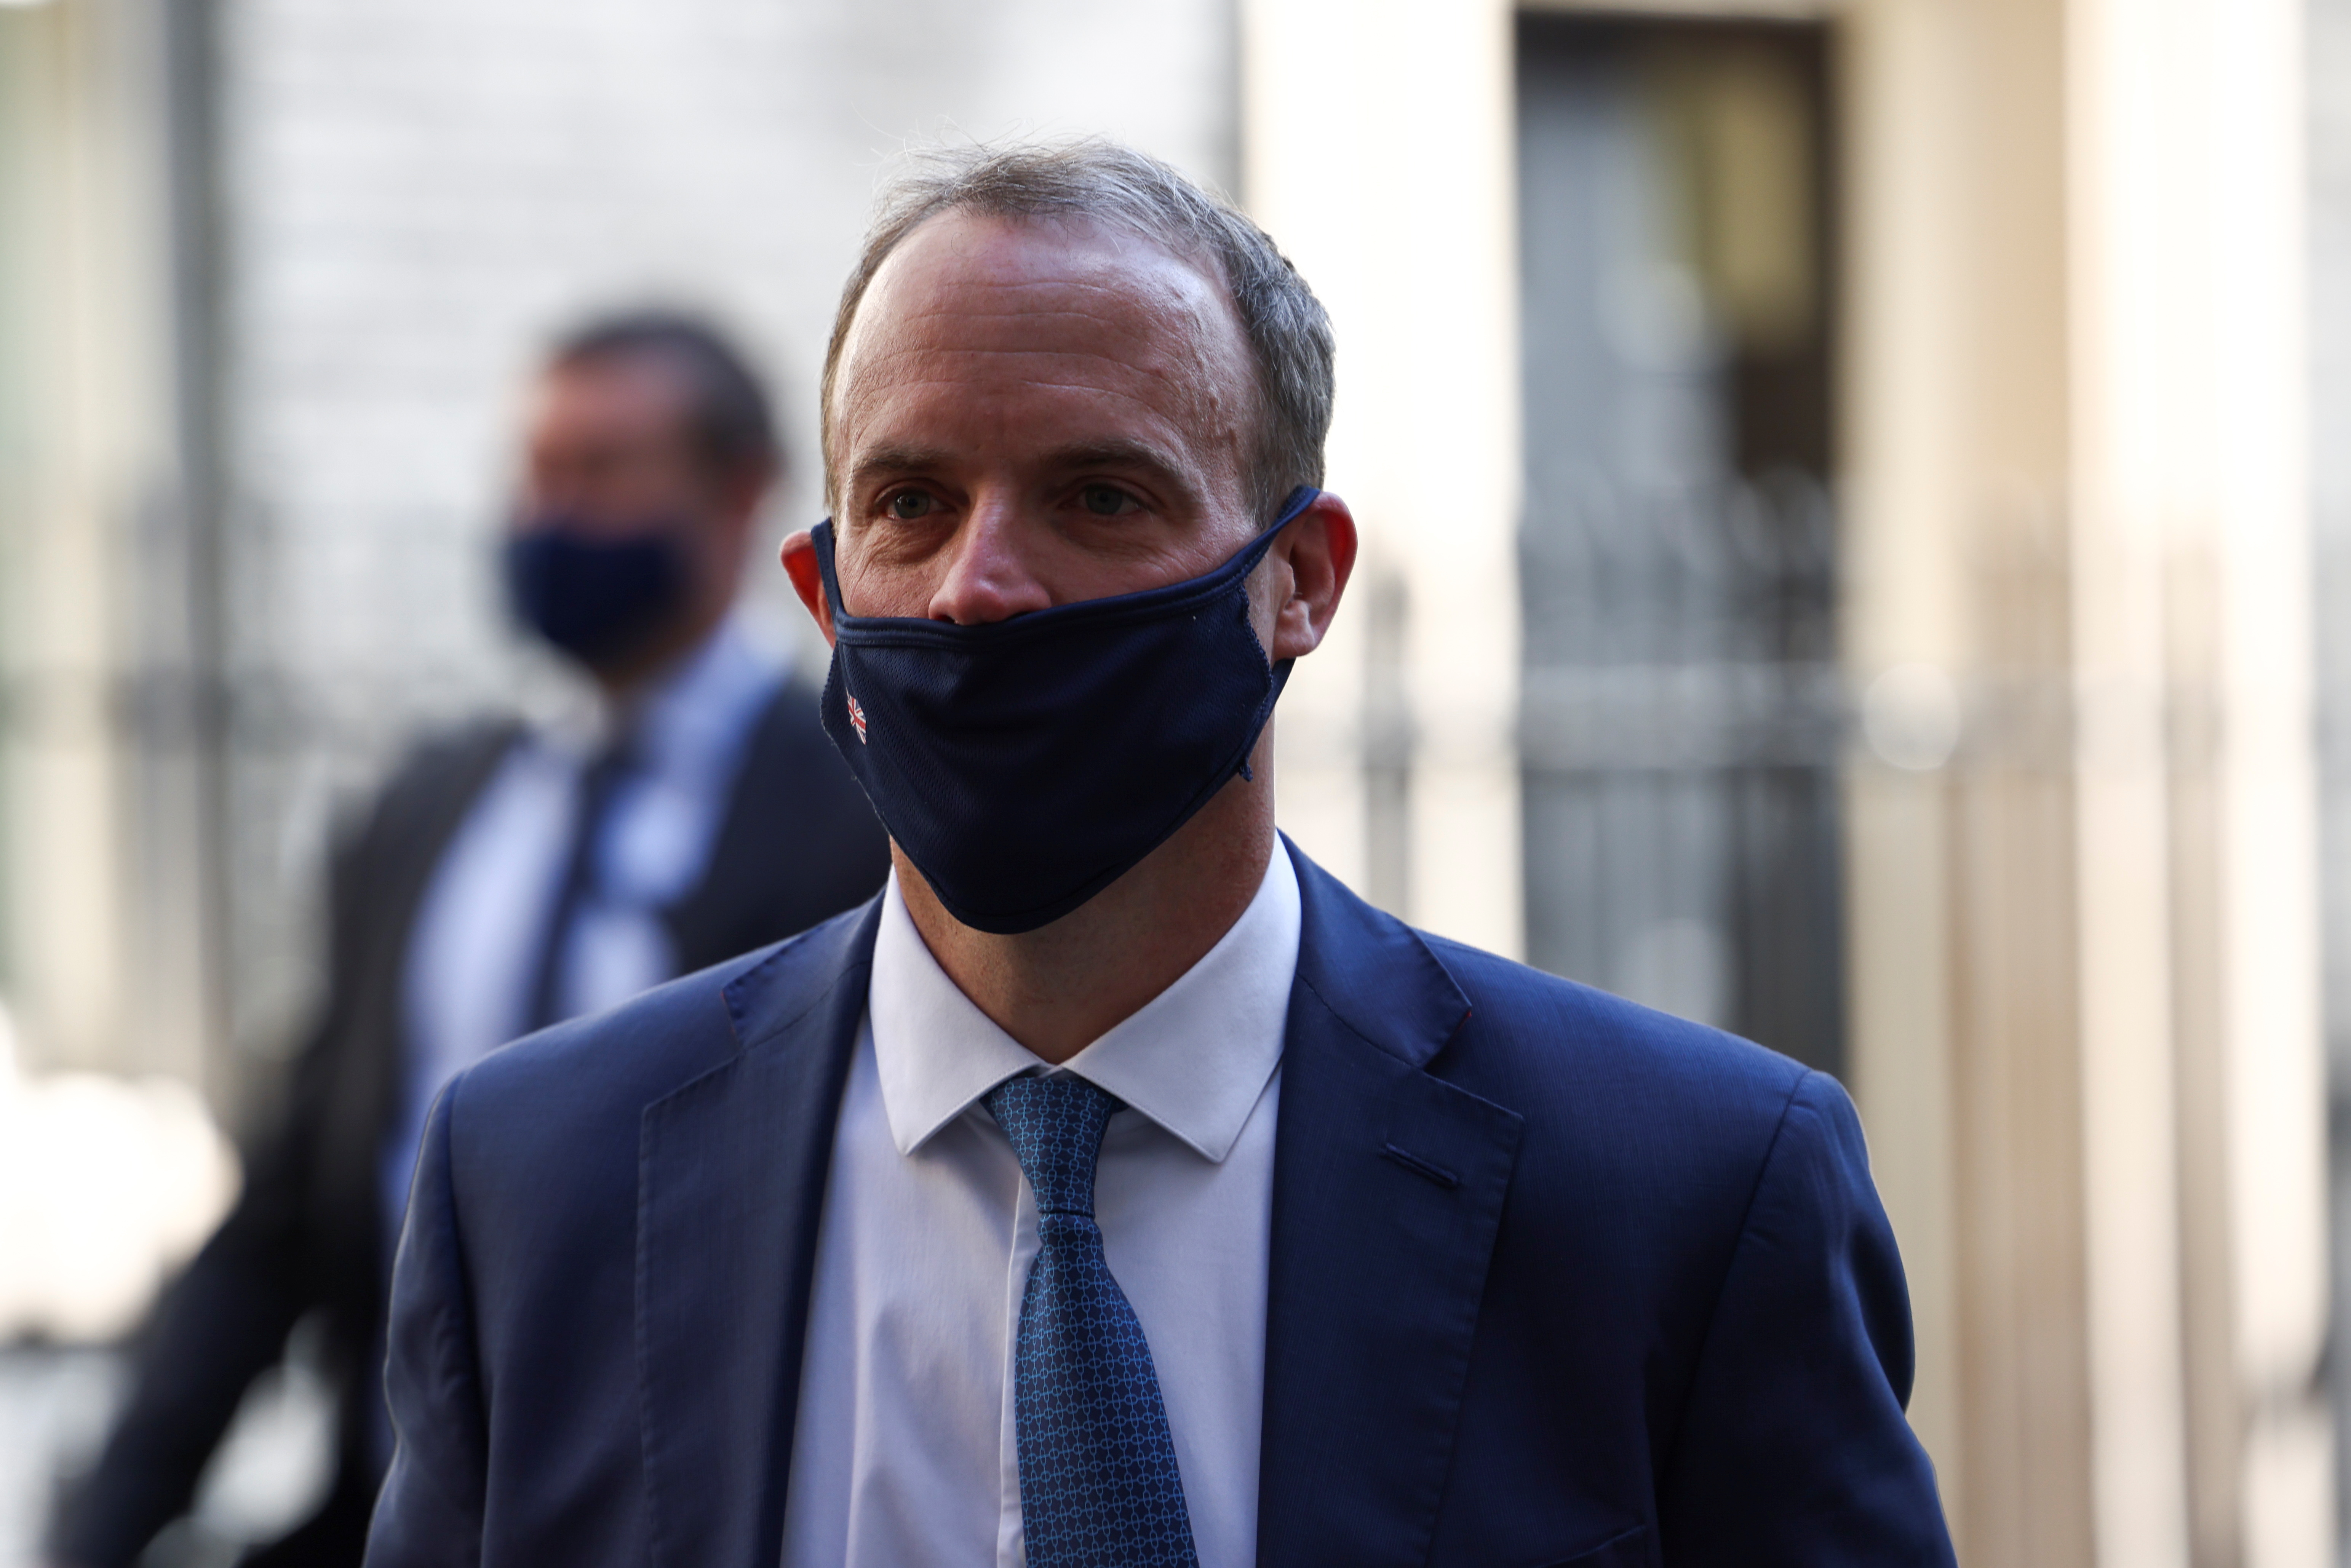 Britain's Foreign Secretary Dominic Raab leaves 10 Downing Street, in London, Britain, April 27, 2021. REUTERS/Henry Nicholls